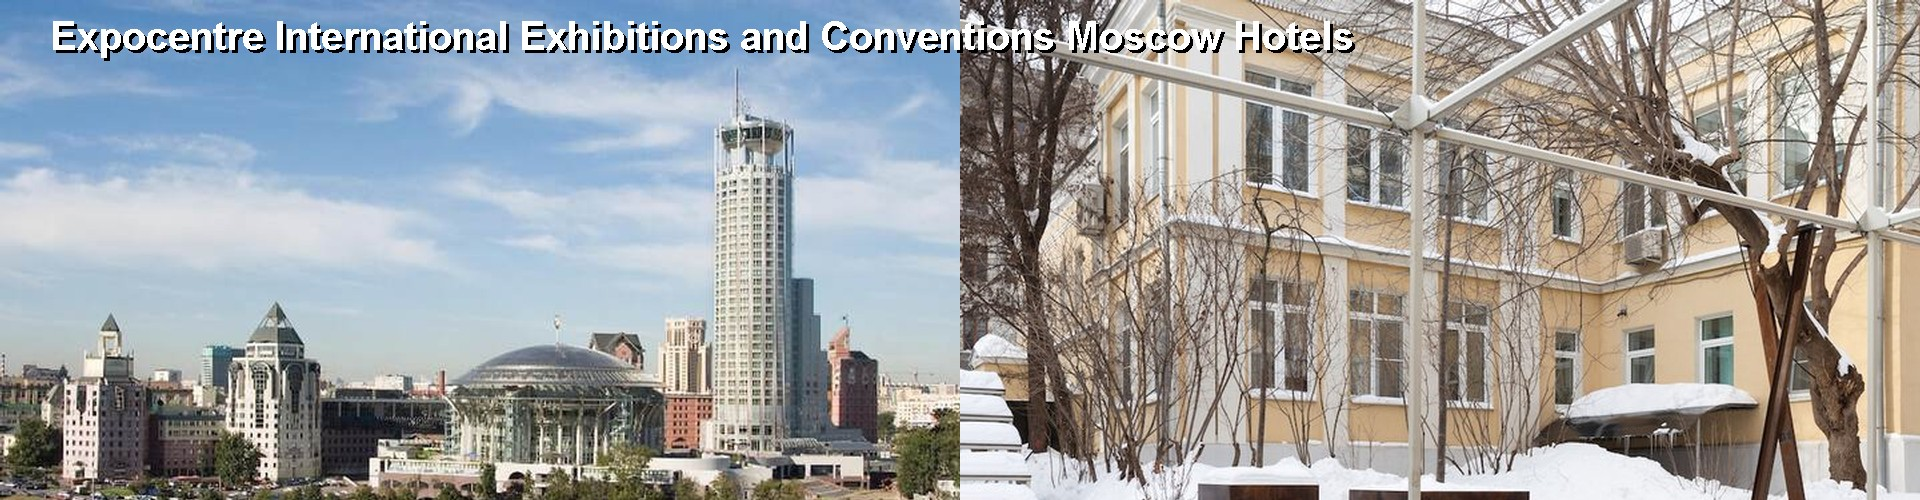 5 Best Hotels near Expocentre International Exhibitions and Conventions Moscow